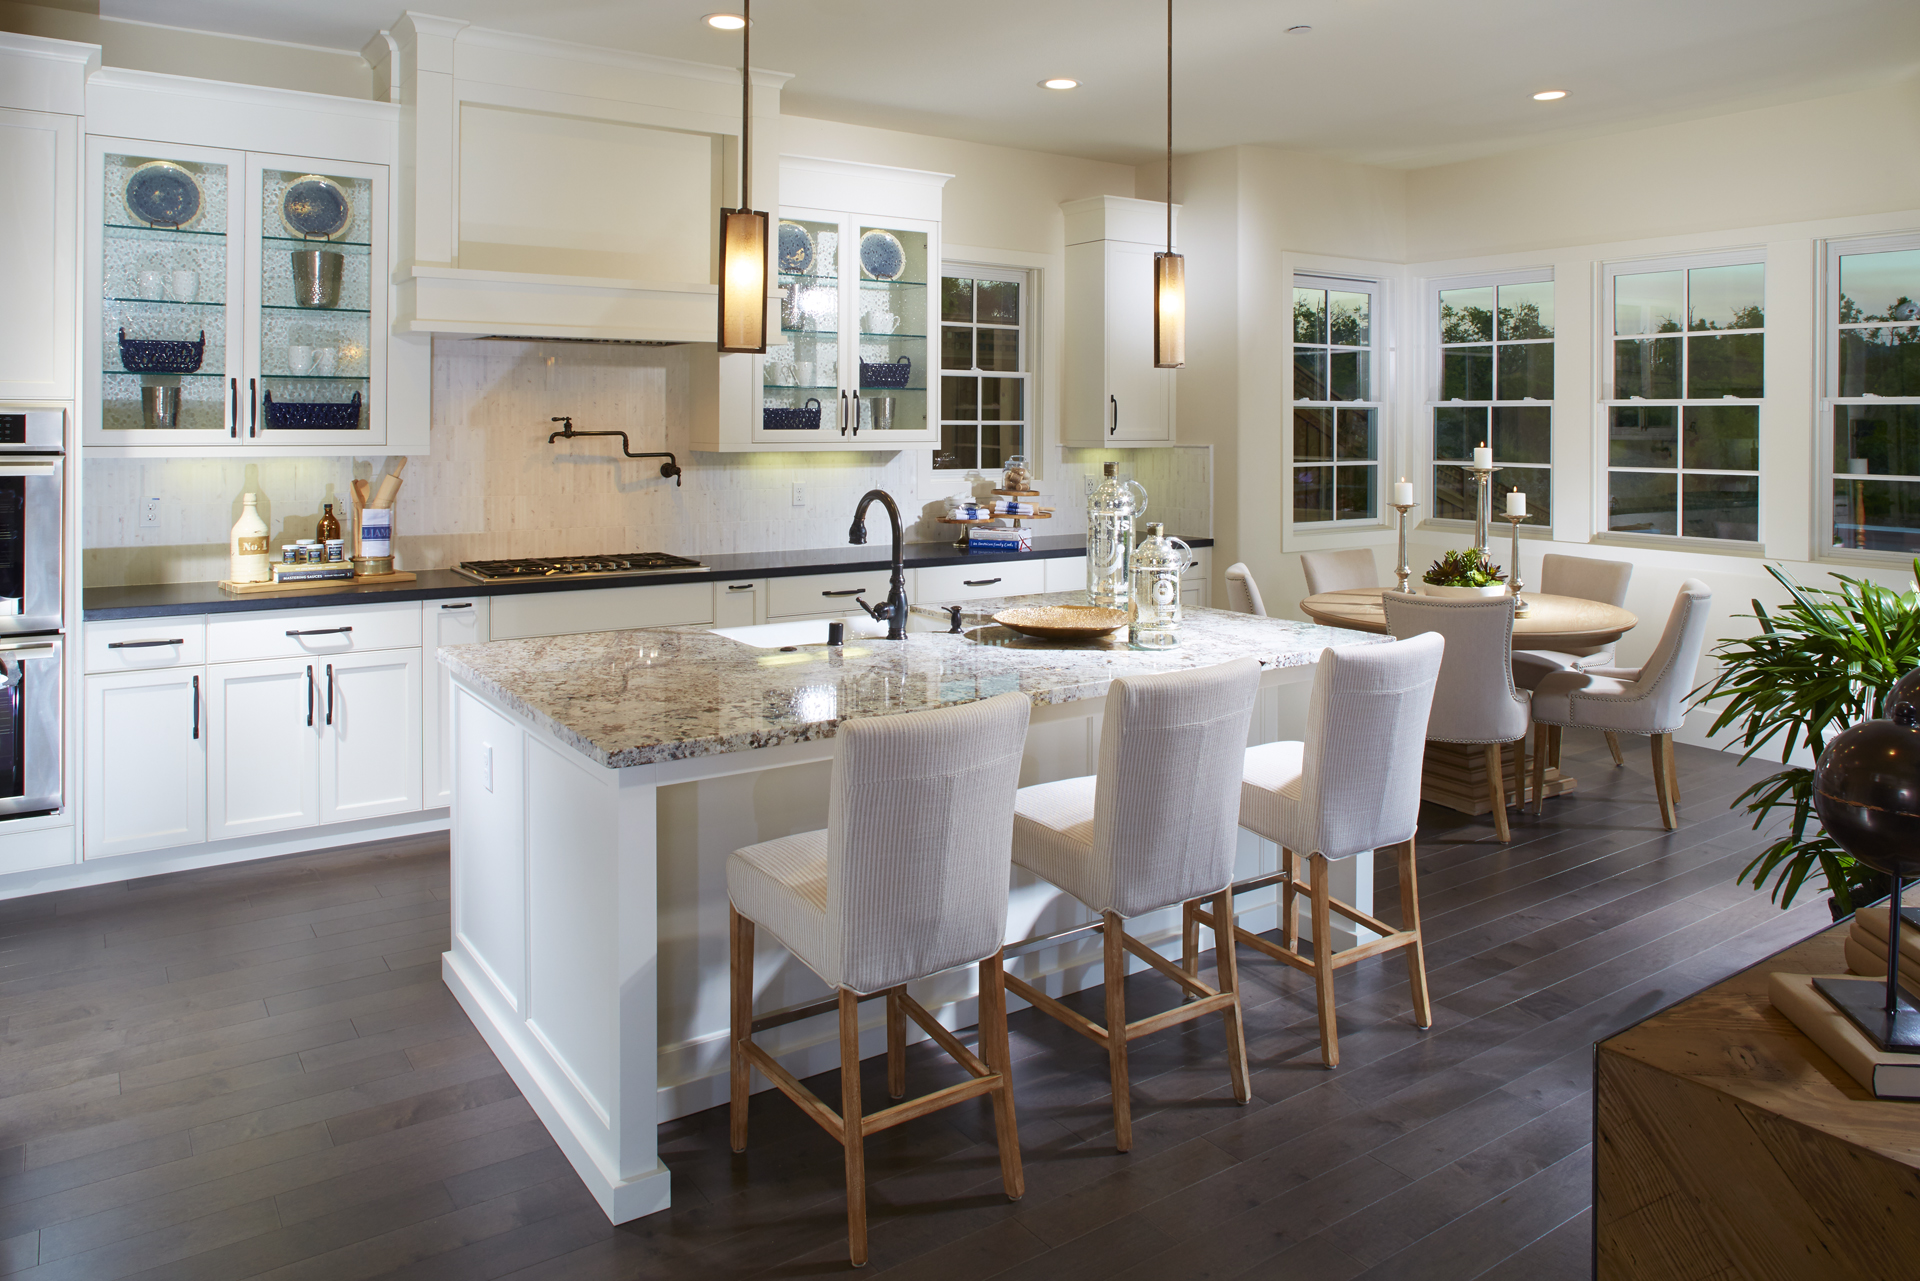 Incredible Tour Summerhills Residence 2 Model Home At Harvest Court Home Interior And Landscaping Oversignezvosmurscom